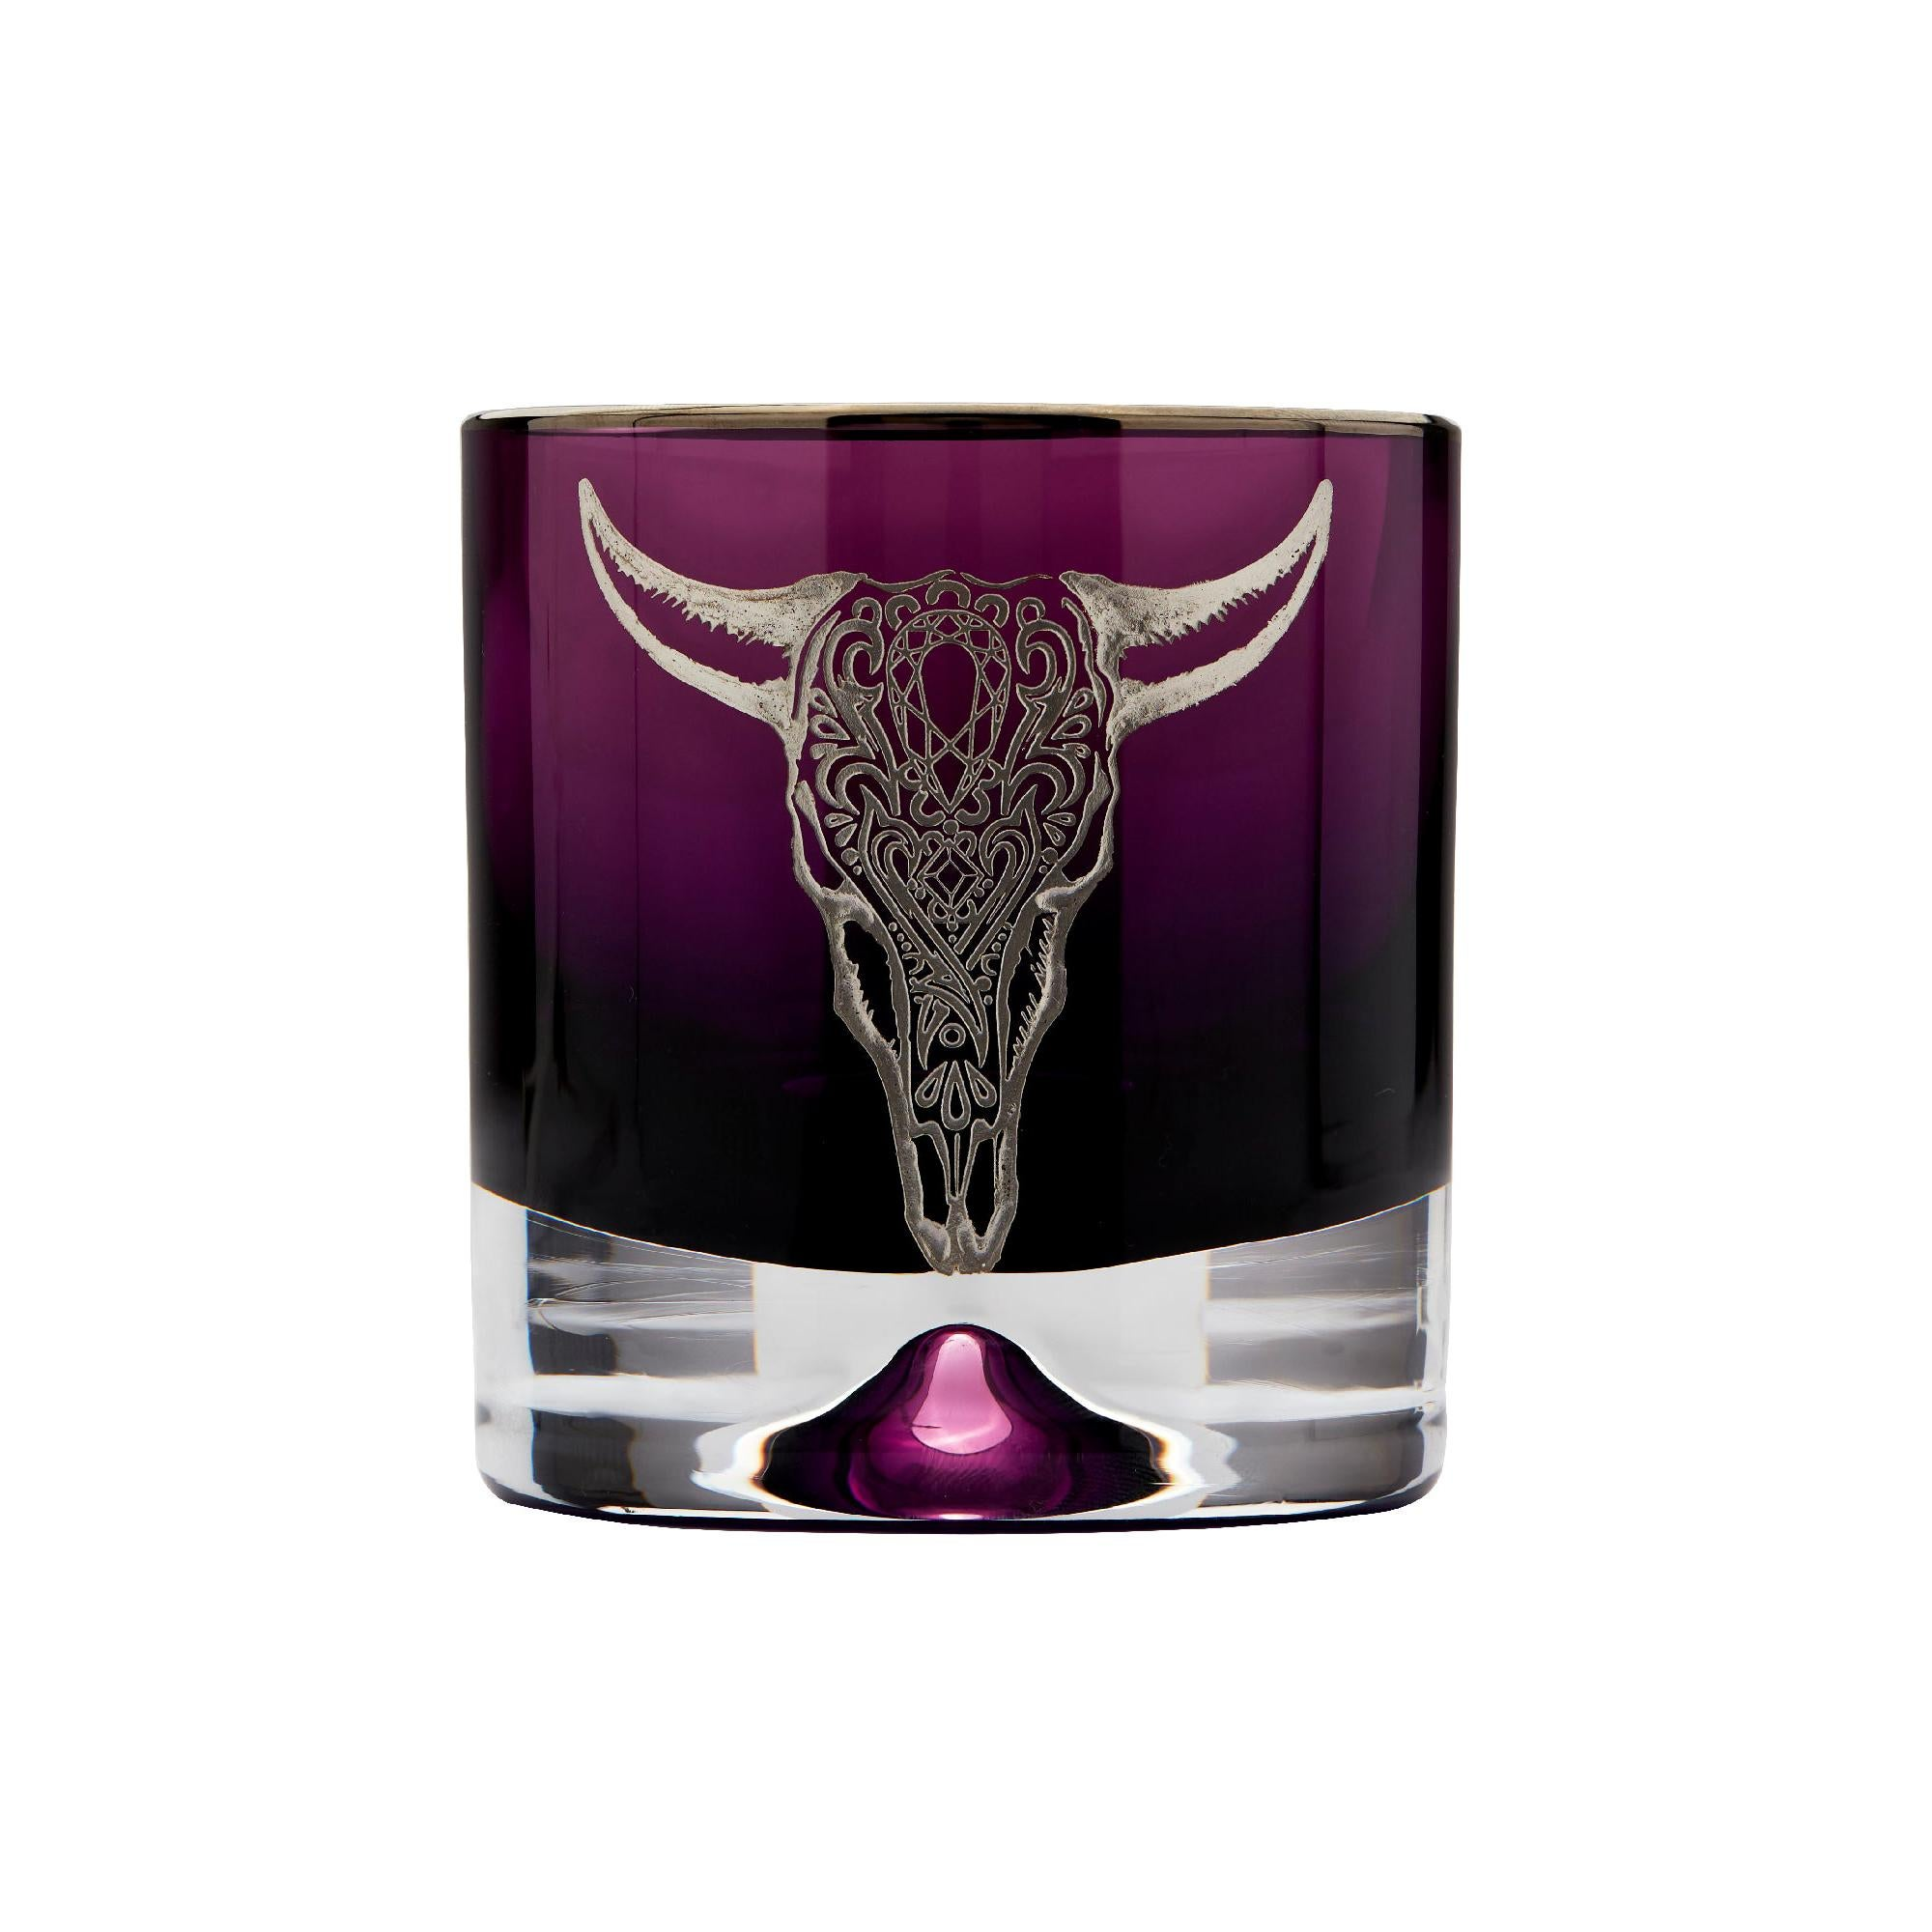 Stephen Webster Tequila Lore Cow Engraved Detail Amethyst Tumbler - Set of 2